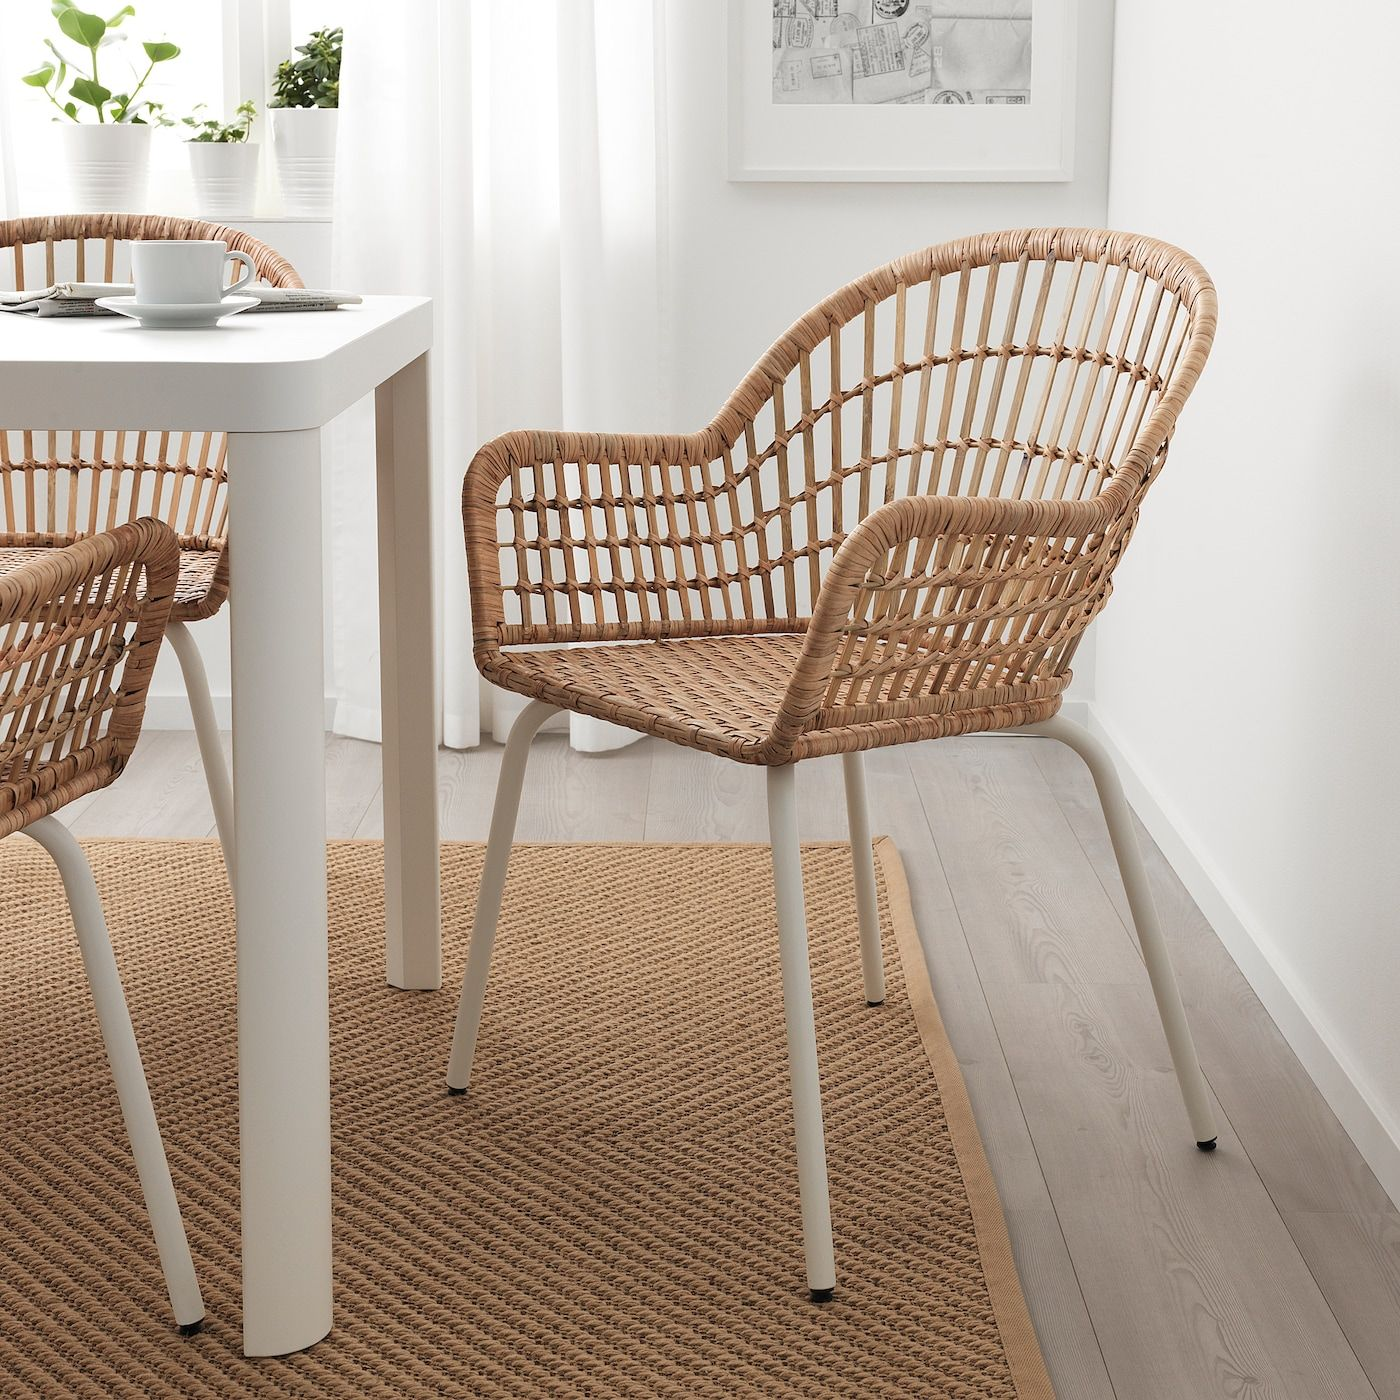 15+ White dining table and 2 chairs Trend